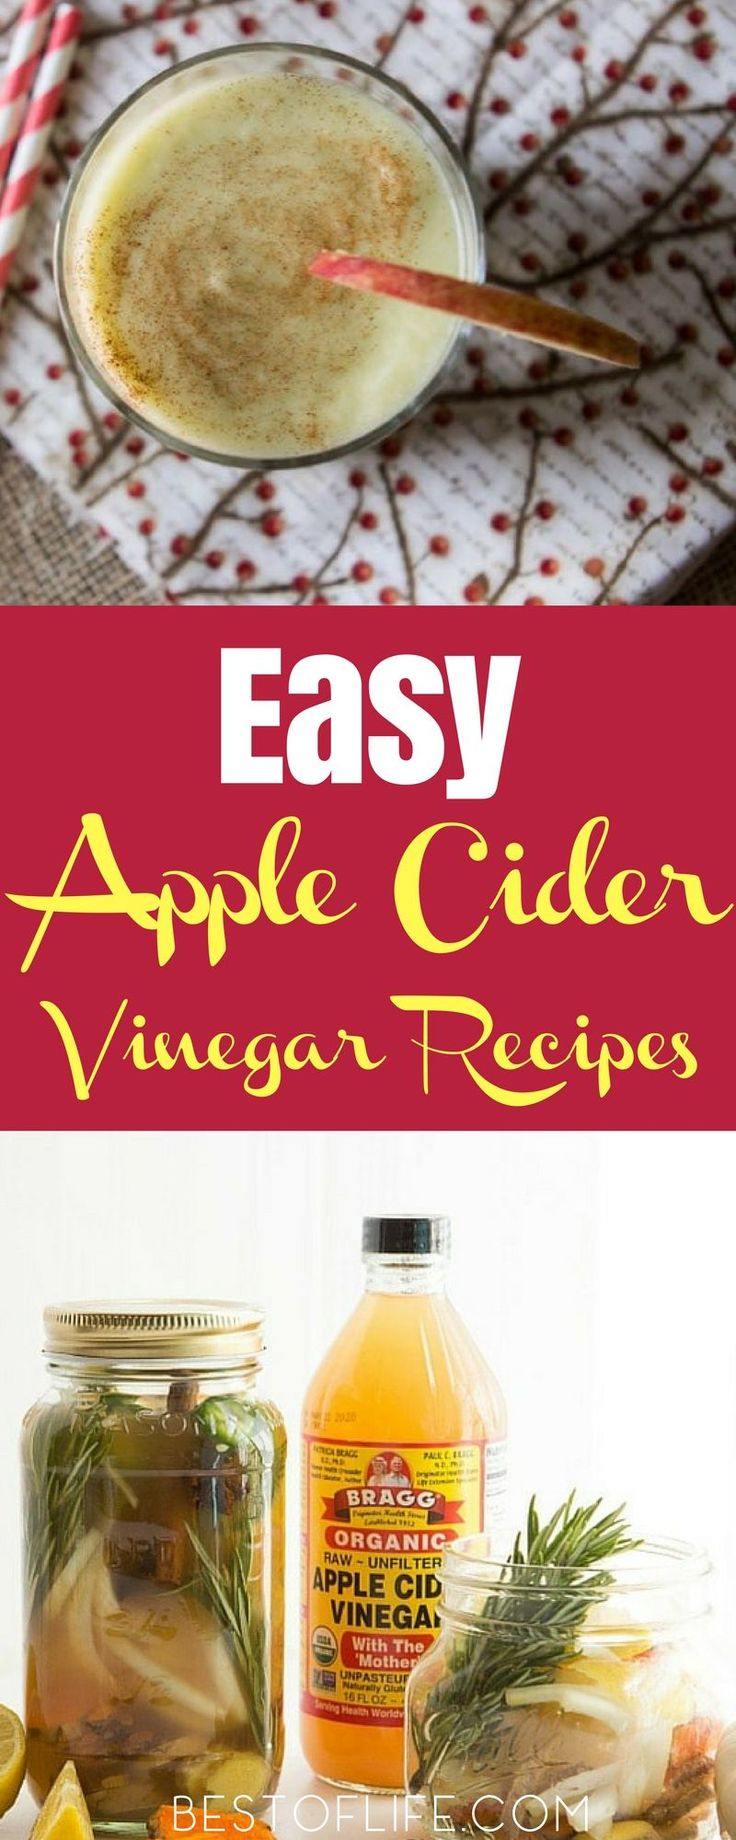 Apple cider vinegar shouldn't be classified as a drink because no one wants to drink it for its flavor but the health benefits make it worth a try. Best Apple Cider Vinegar Drink Recipes | Best Apple Cider Vinegar Drink Recipes | Best Apple Cider Vinegar Recipes | Easy Apple Cider Vinegar Recipes | Apple Cider Vinegar Weight Loss Recipes | Best Apple Cider Vinegar Weight Loss Recipes #weightlossdrinks